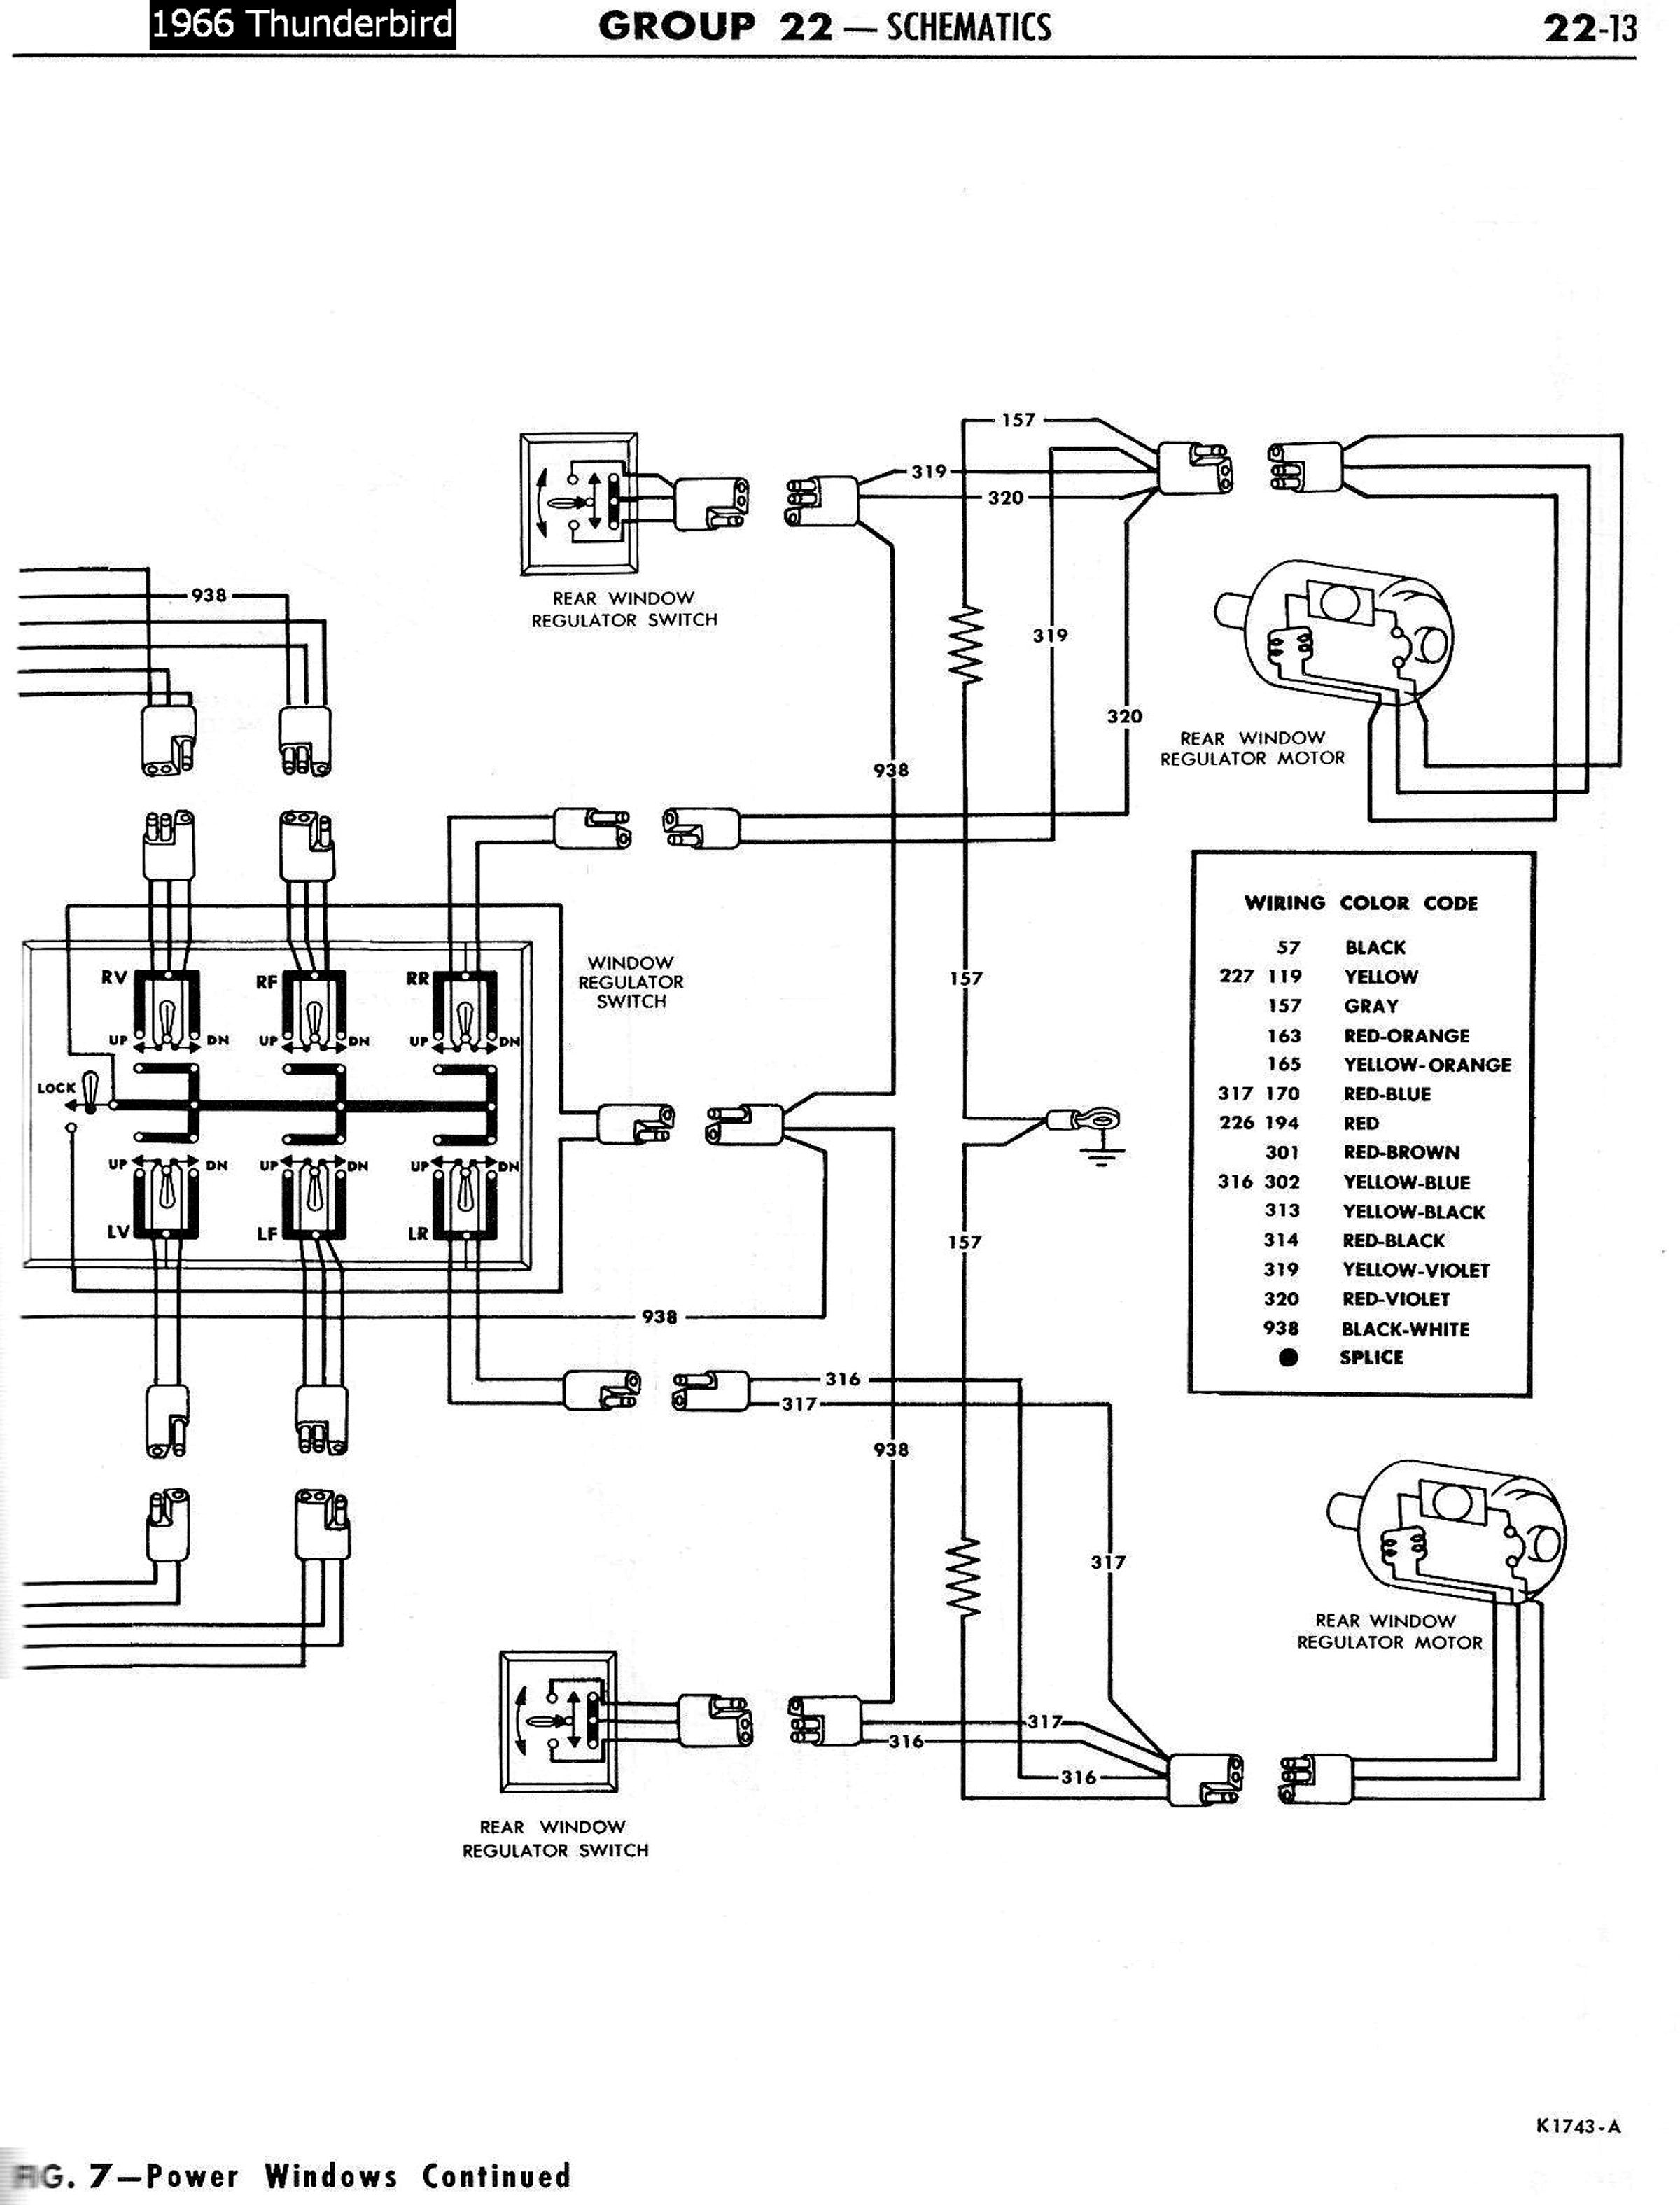 1967 Thunderbird Turn Signal Diagram Wiring Schematic 67 Chevy Truck Library 1956 Ford